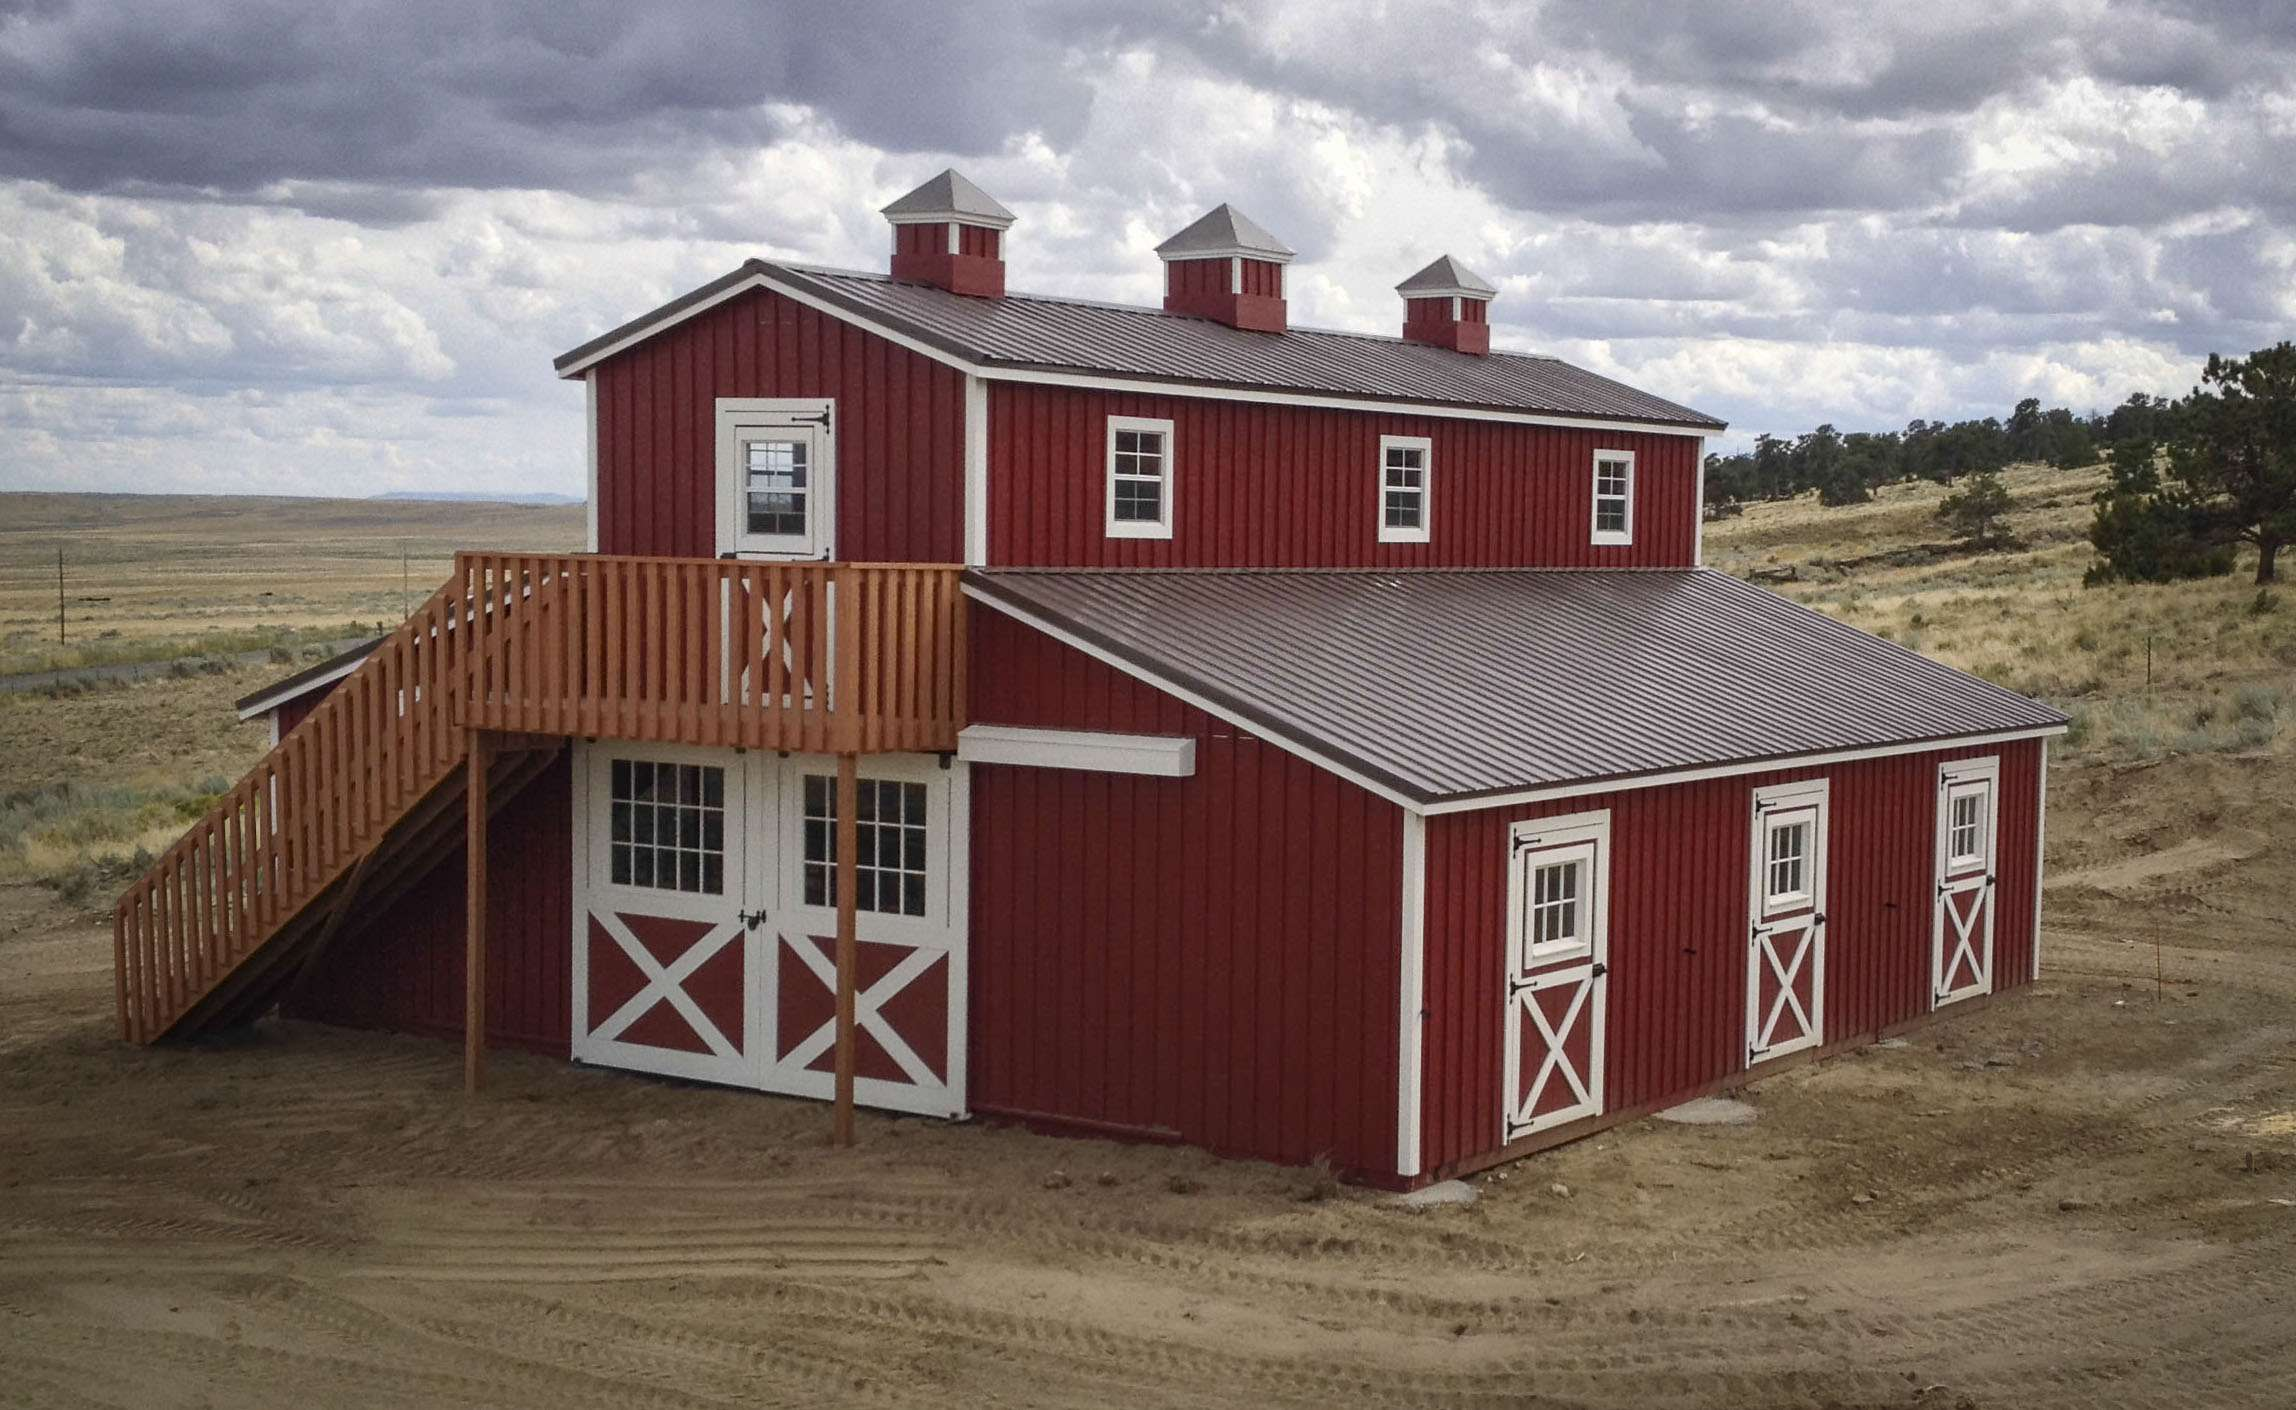 36 x 36 modular horse barn casper wy for Red barn prefab